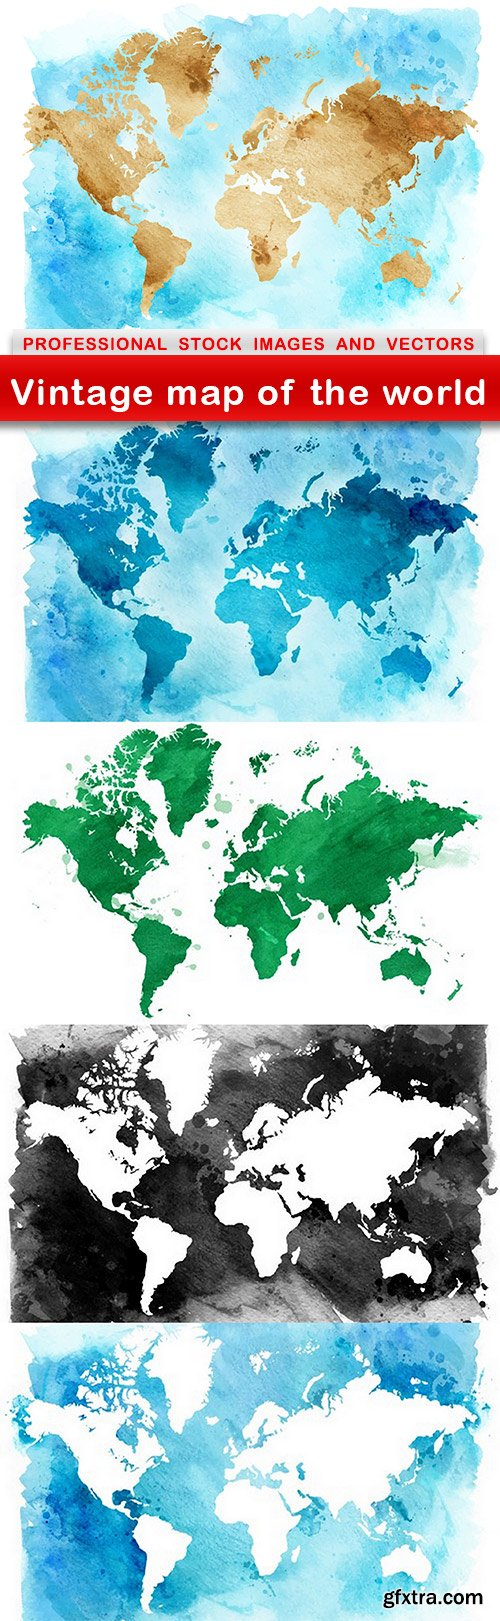 Vintage map of the world - 5 EPS